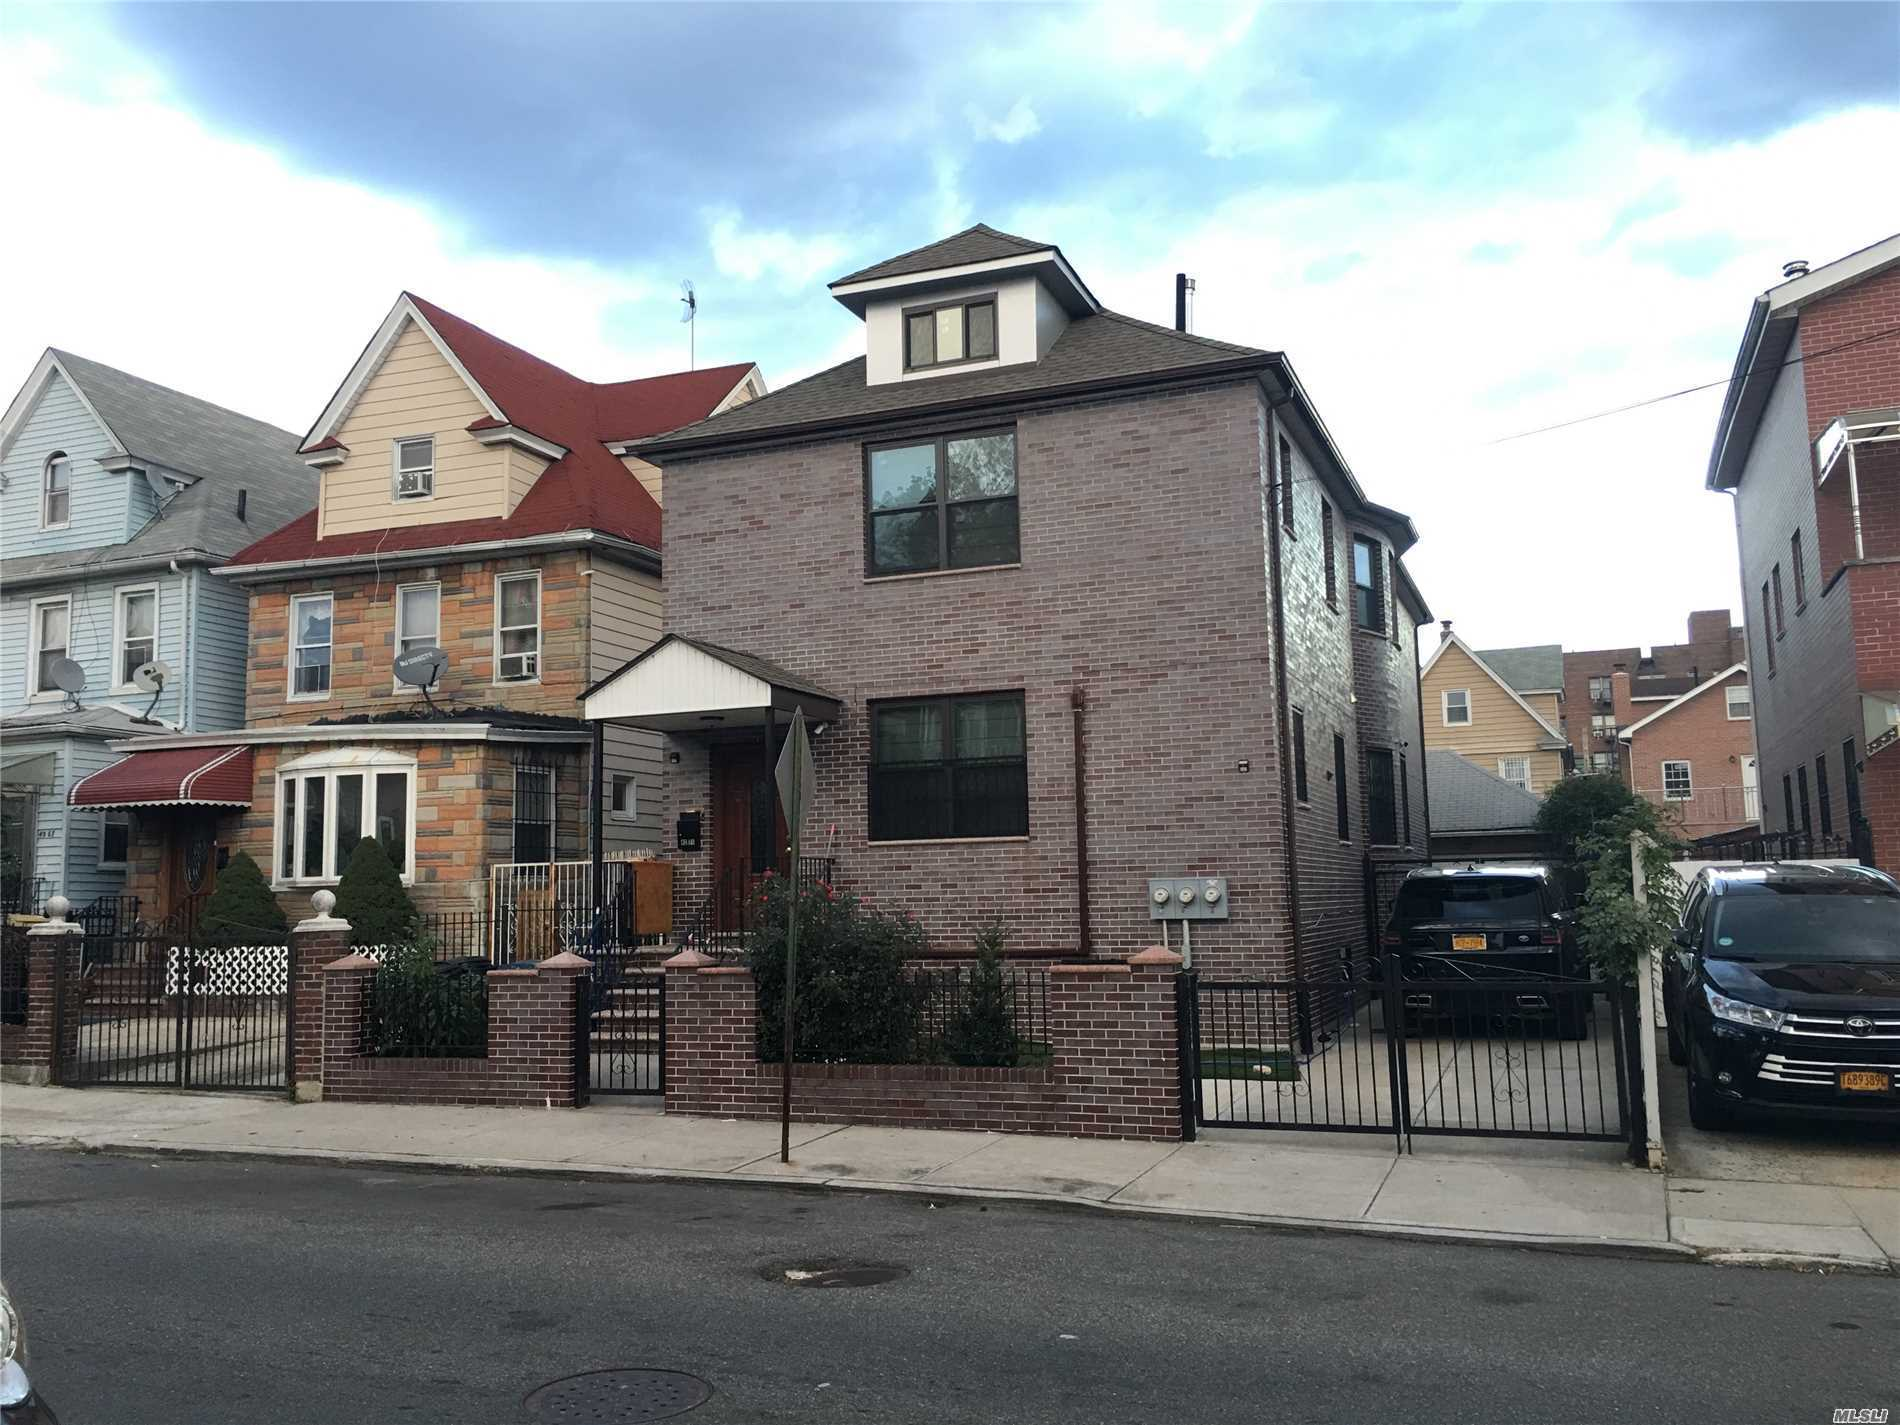 Rare Beautiful Brick 2 Family Detached House In Center Of Elmhurst, Entire House Re-Done The Work From Inside To Outside. Wood Floor,  Marble Kitchen, Center Air Condition In Whole House, Full Finished Basement With A Lot Of Windows High Ceiling, Laundery Room, 2 Boilers, Access To Back Yard. 5 Minutes To M, R Train, Supermarket, Park,  6 Minutes To 74 Street Roosevelt Subway Station E, F, M, R, 7 Train Station,  Convenience To Everything.